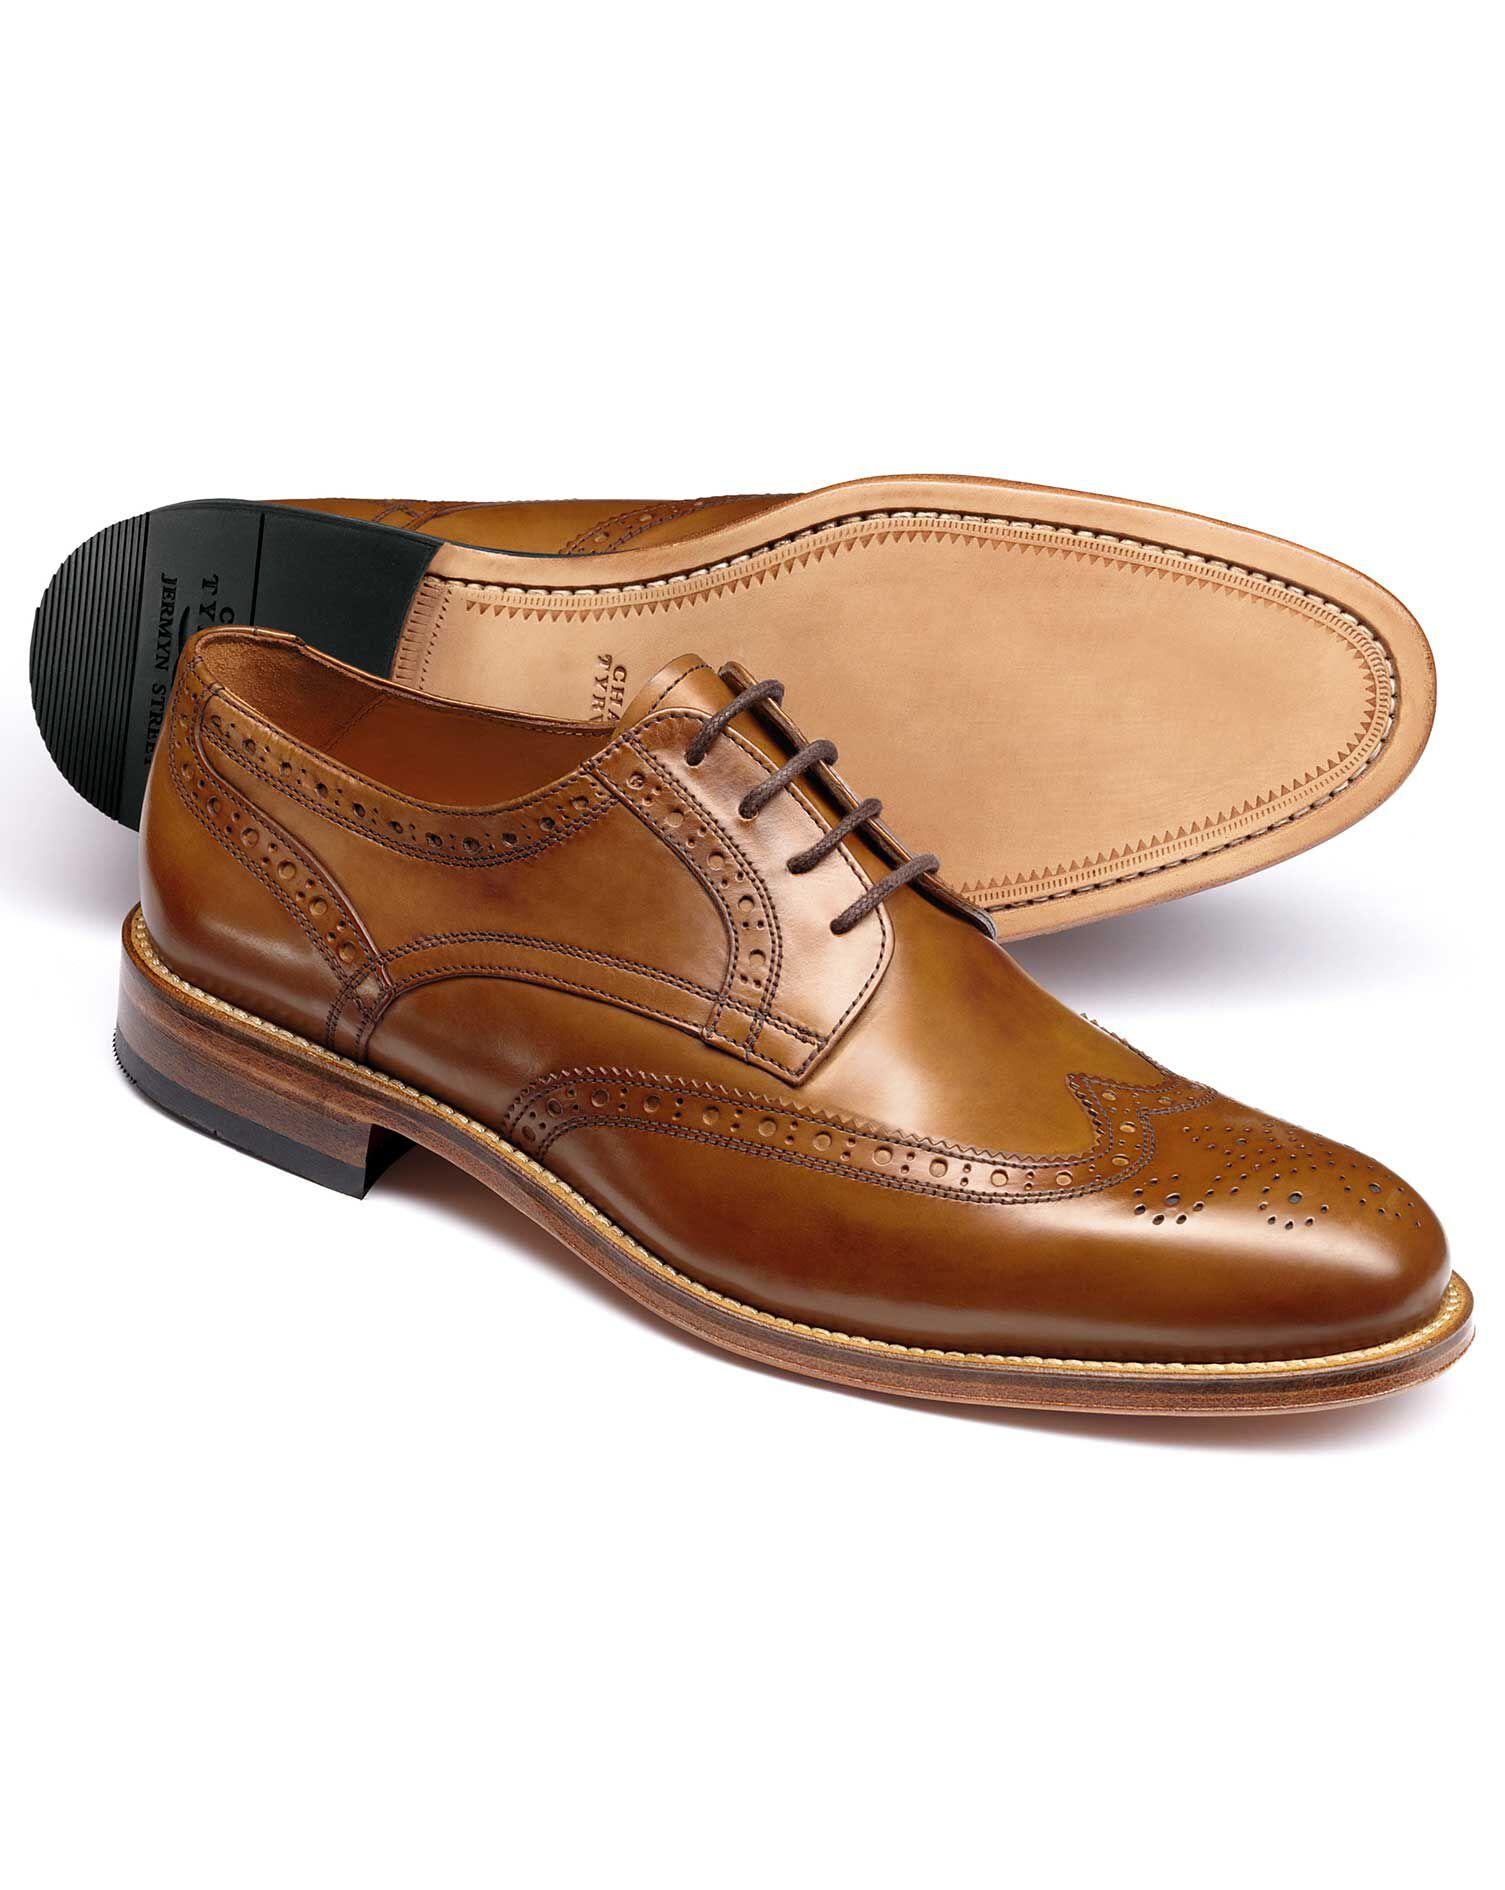 Tan Medlyn Wing Tip Brogue Derby Shoes Size 10.5 R by Charles Tyrwhitt